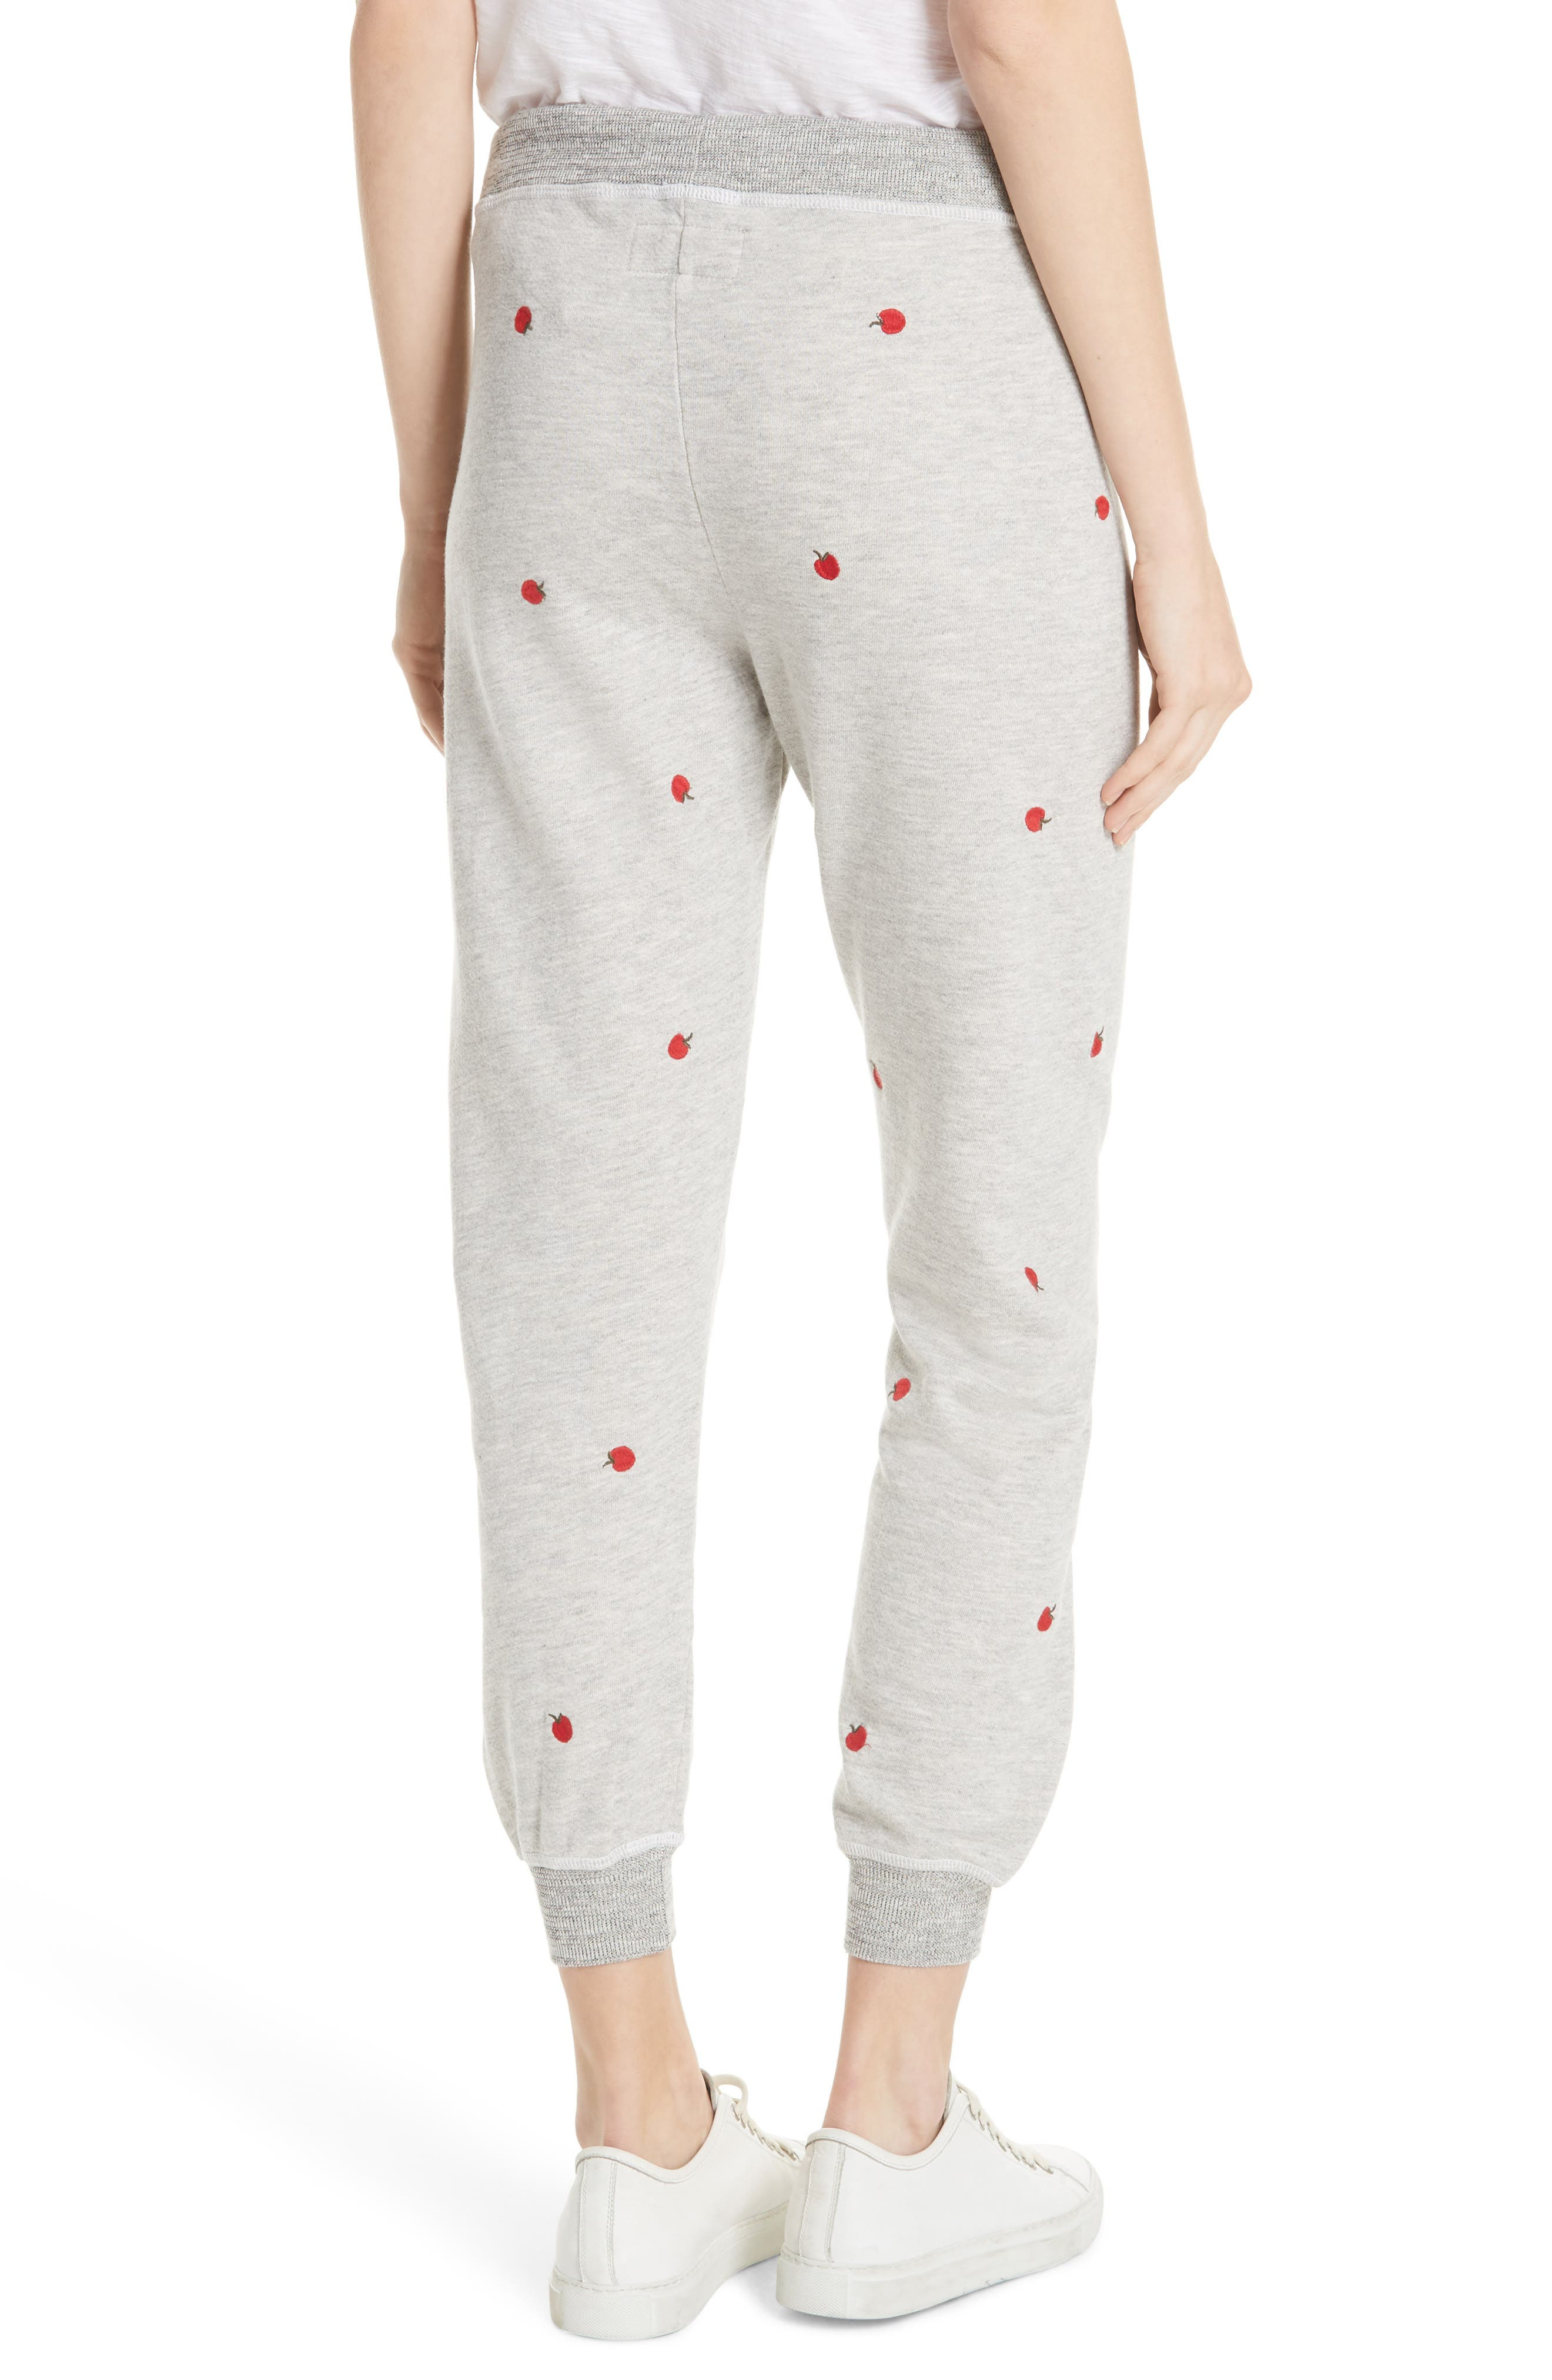 The Cropped Sweatpants,                             Alternate thumbnail 2, color,                             Light Heather Grey/ Red Apples